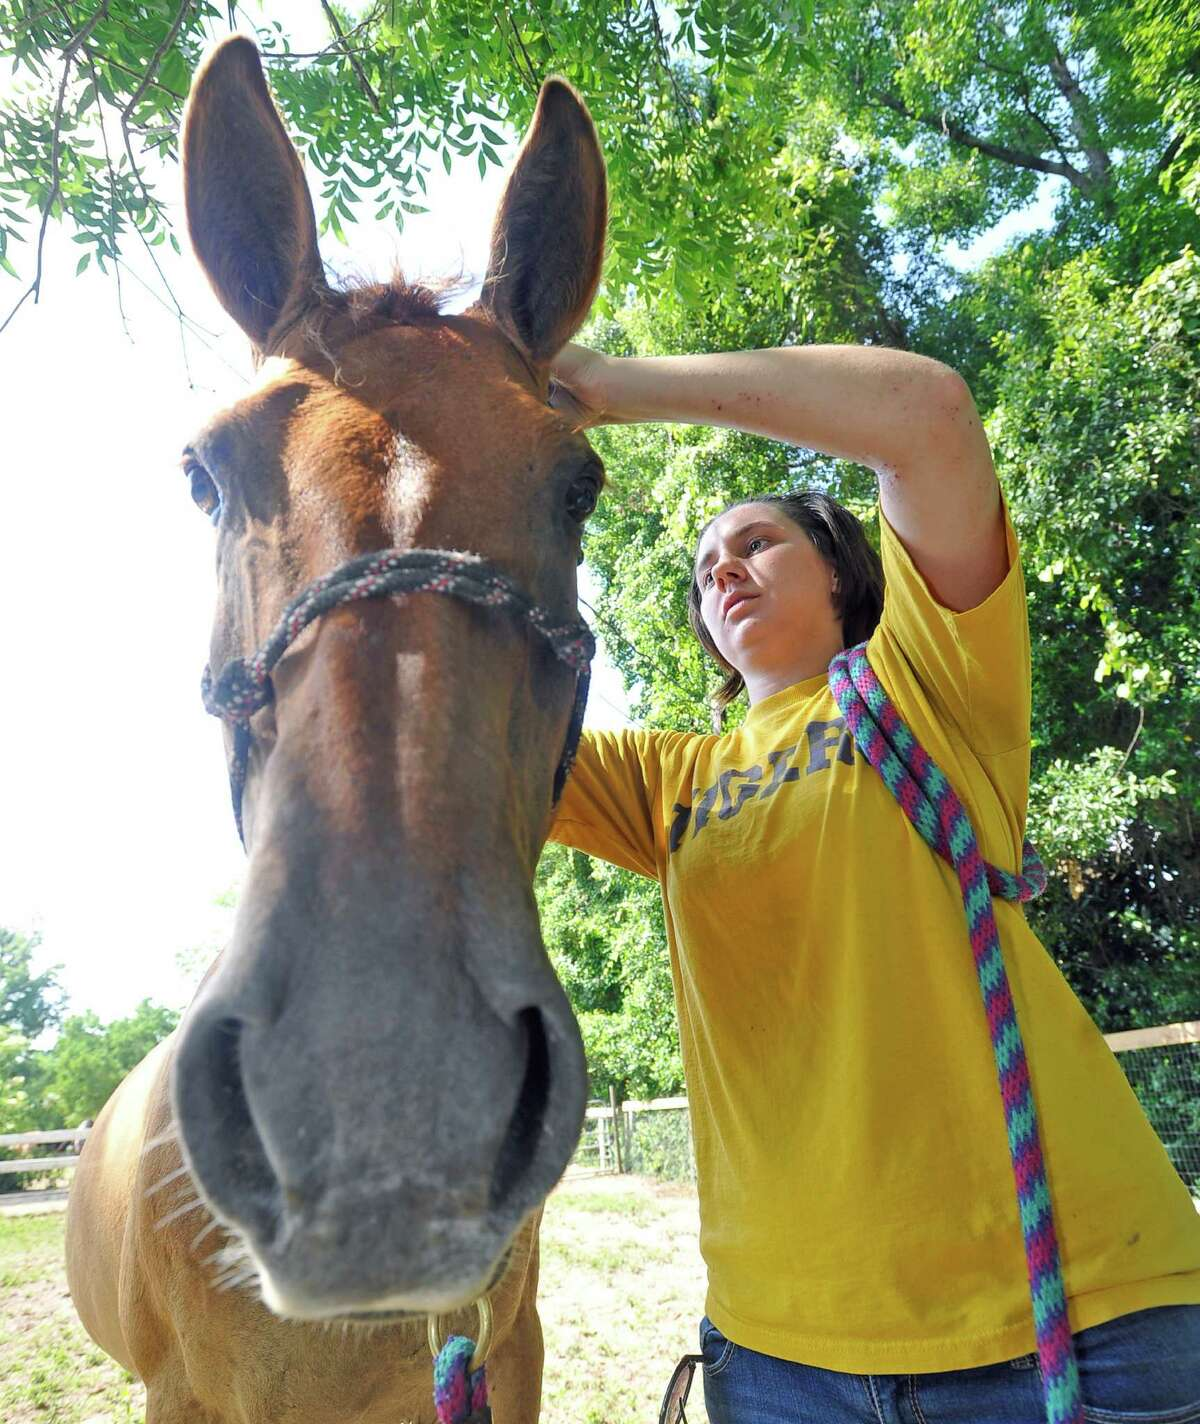 Stable Spirits helps people with mental health problems and others who may need physical therapy, recover through working with horses. Volunteer Crissie Vandehoef, woks on an exercise involving putting a rope bridle on